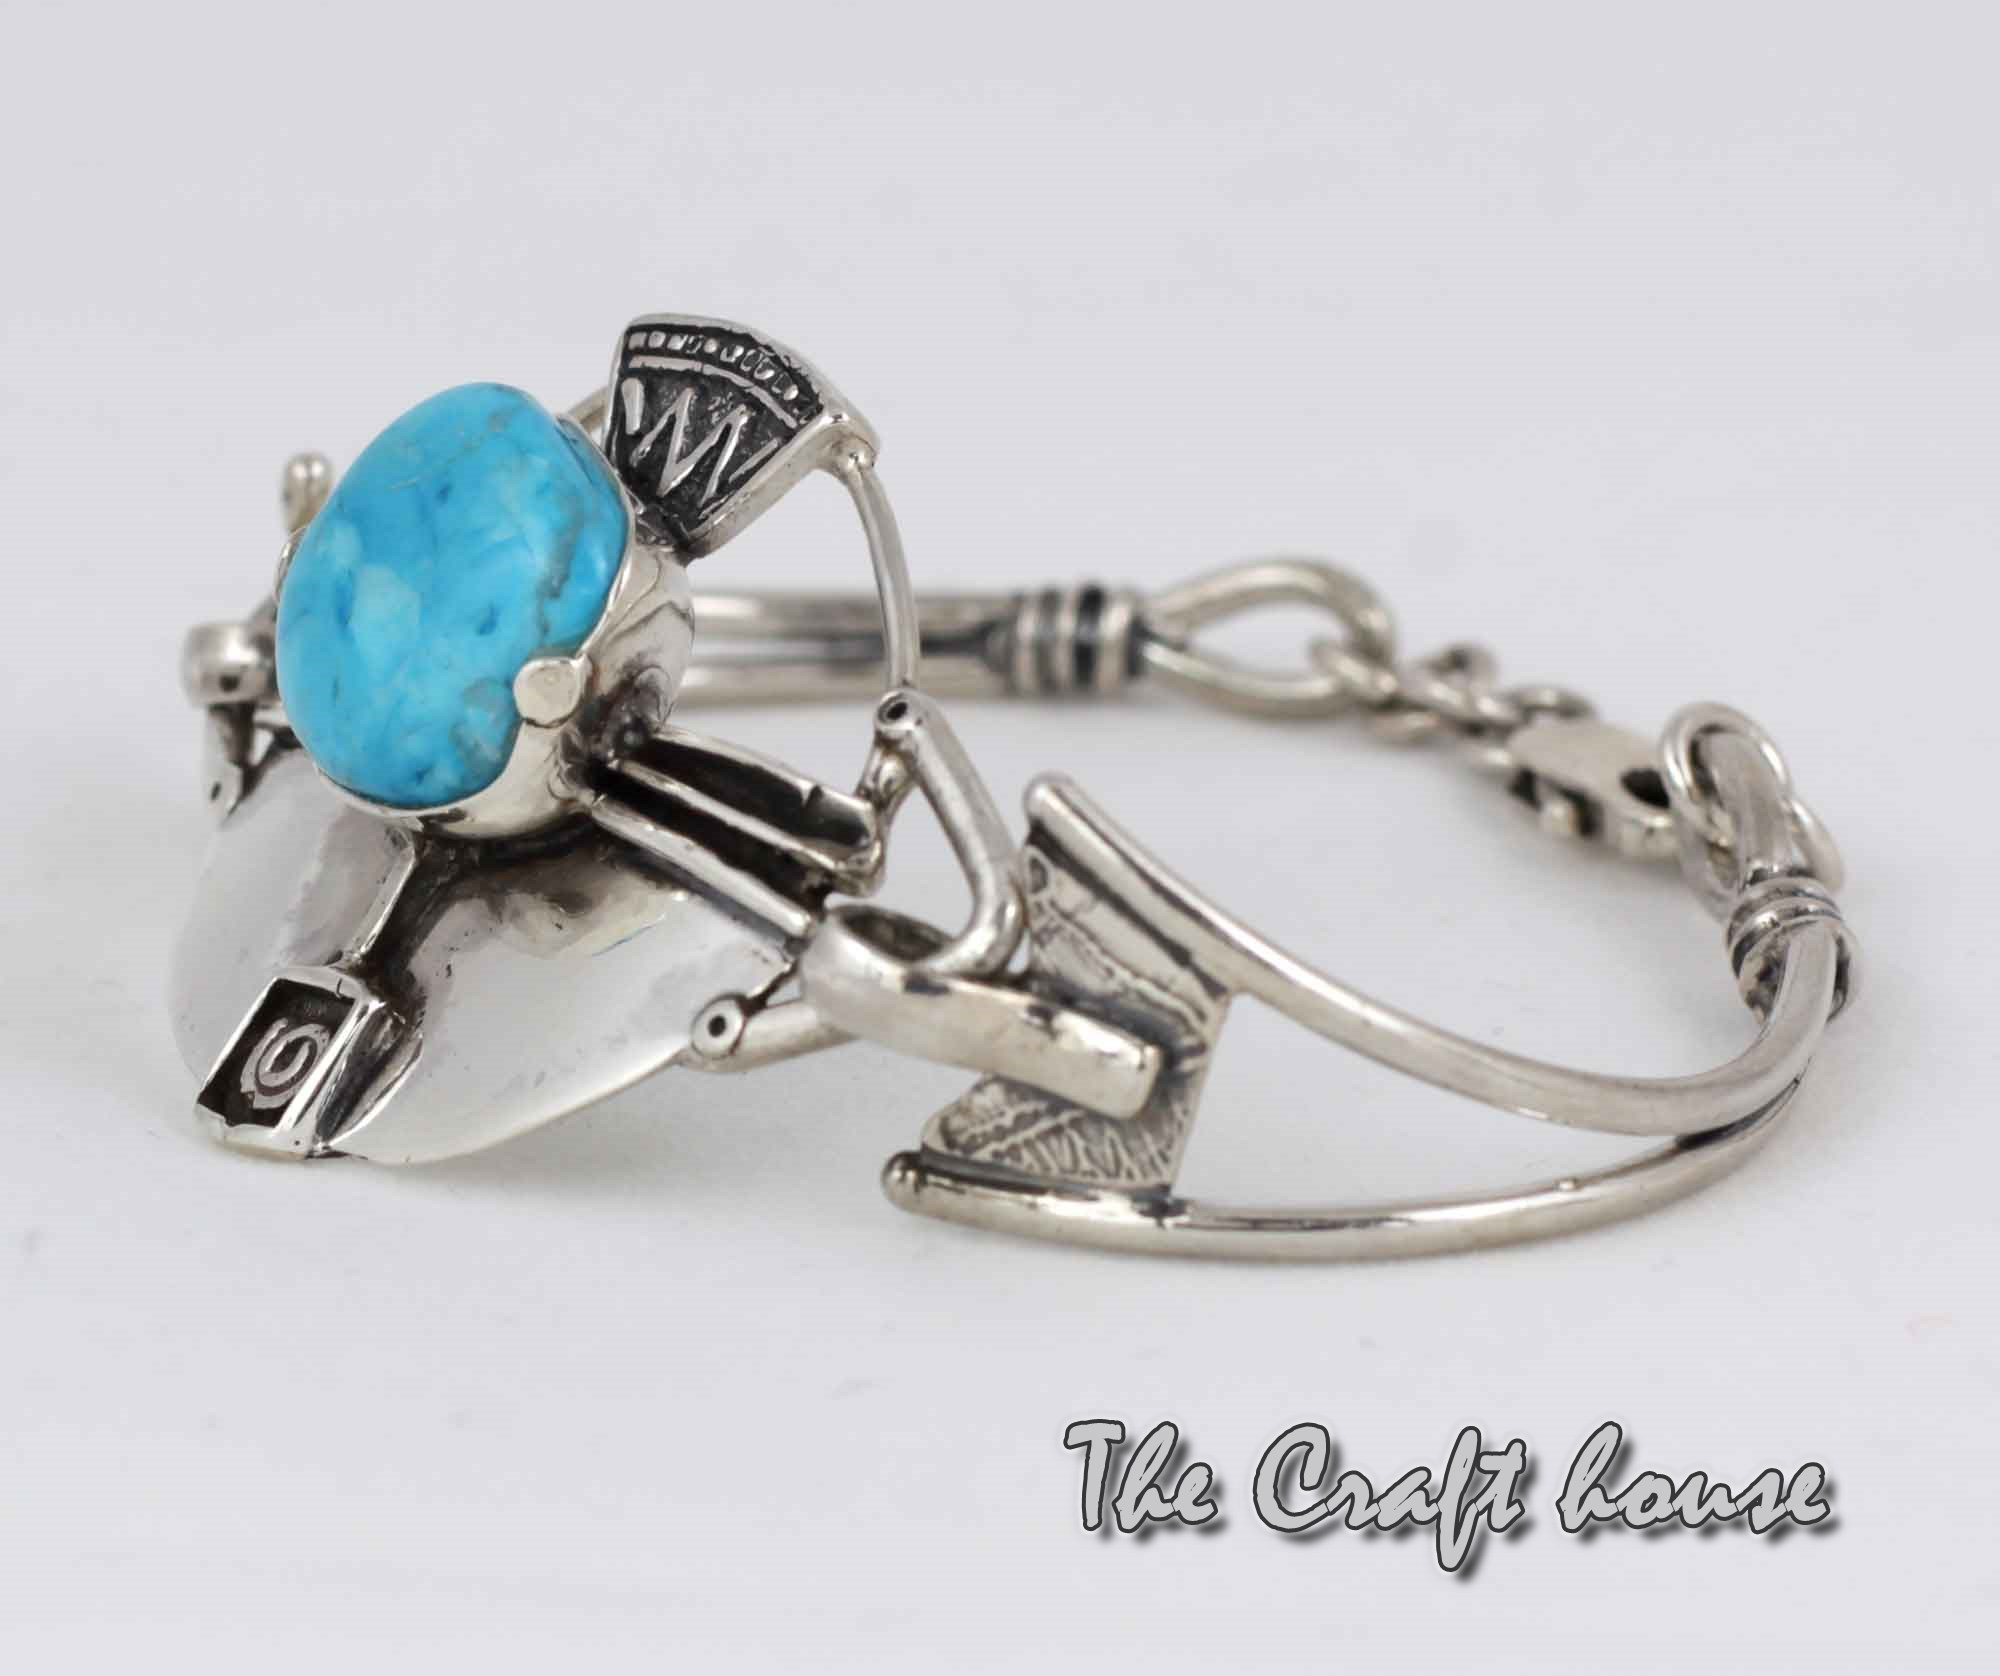 Silver bracelets with Turquoise